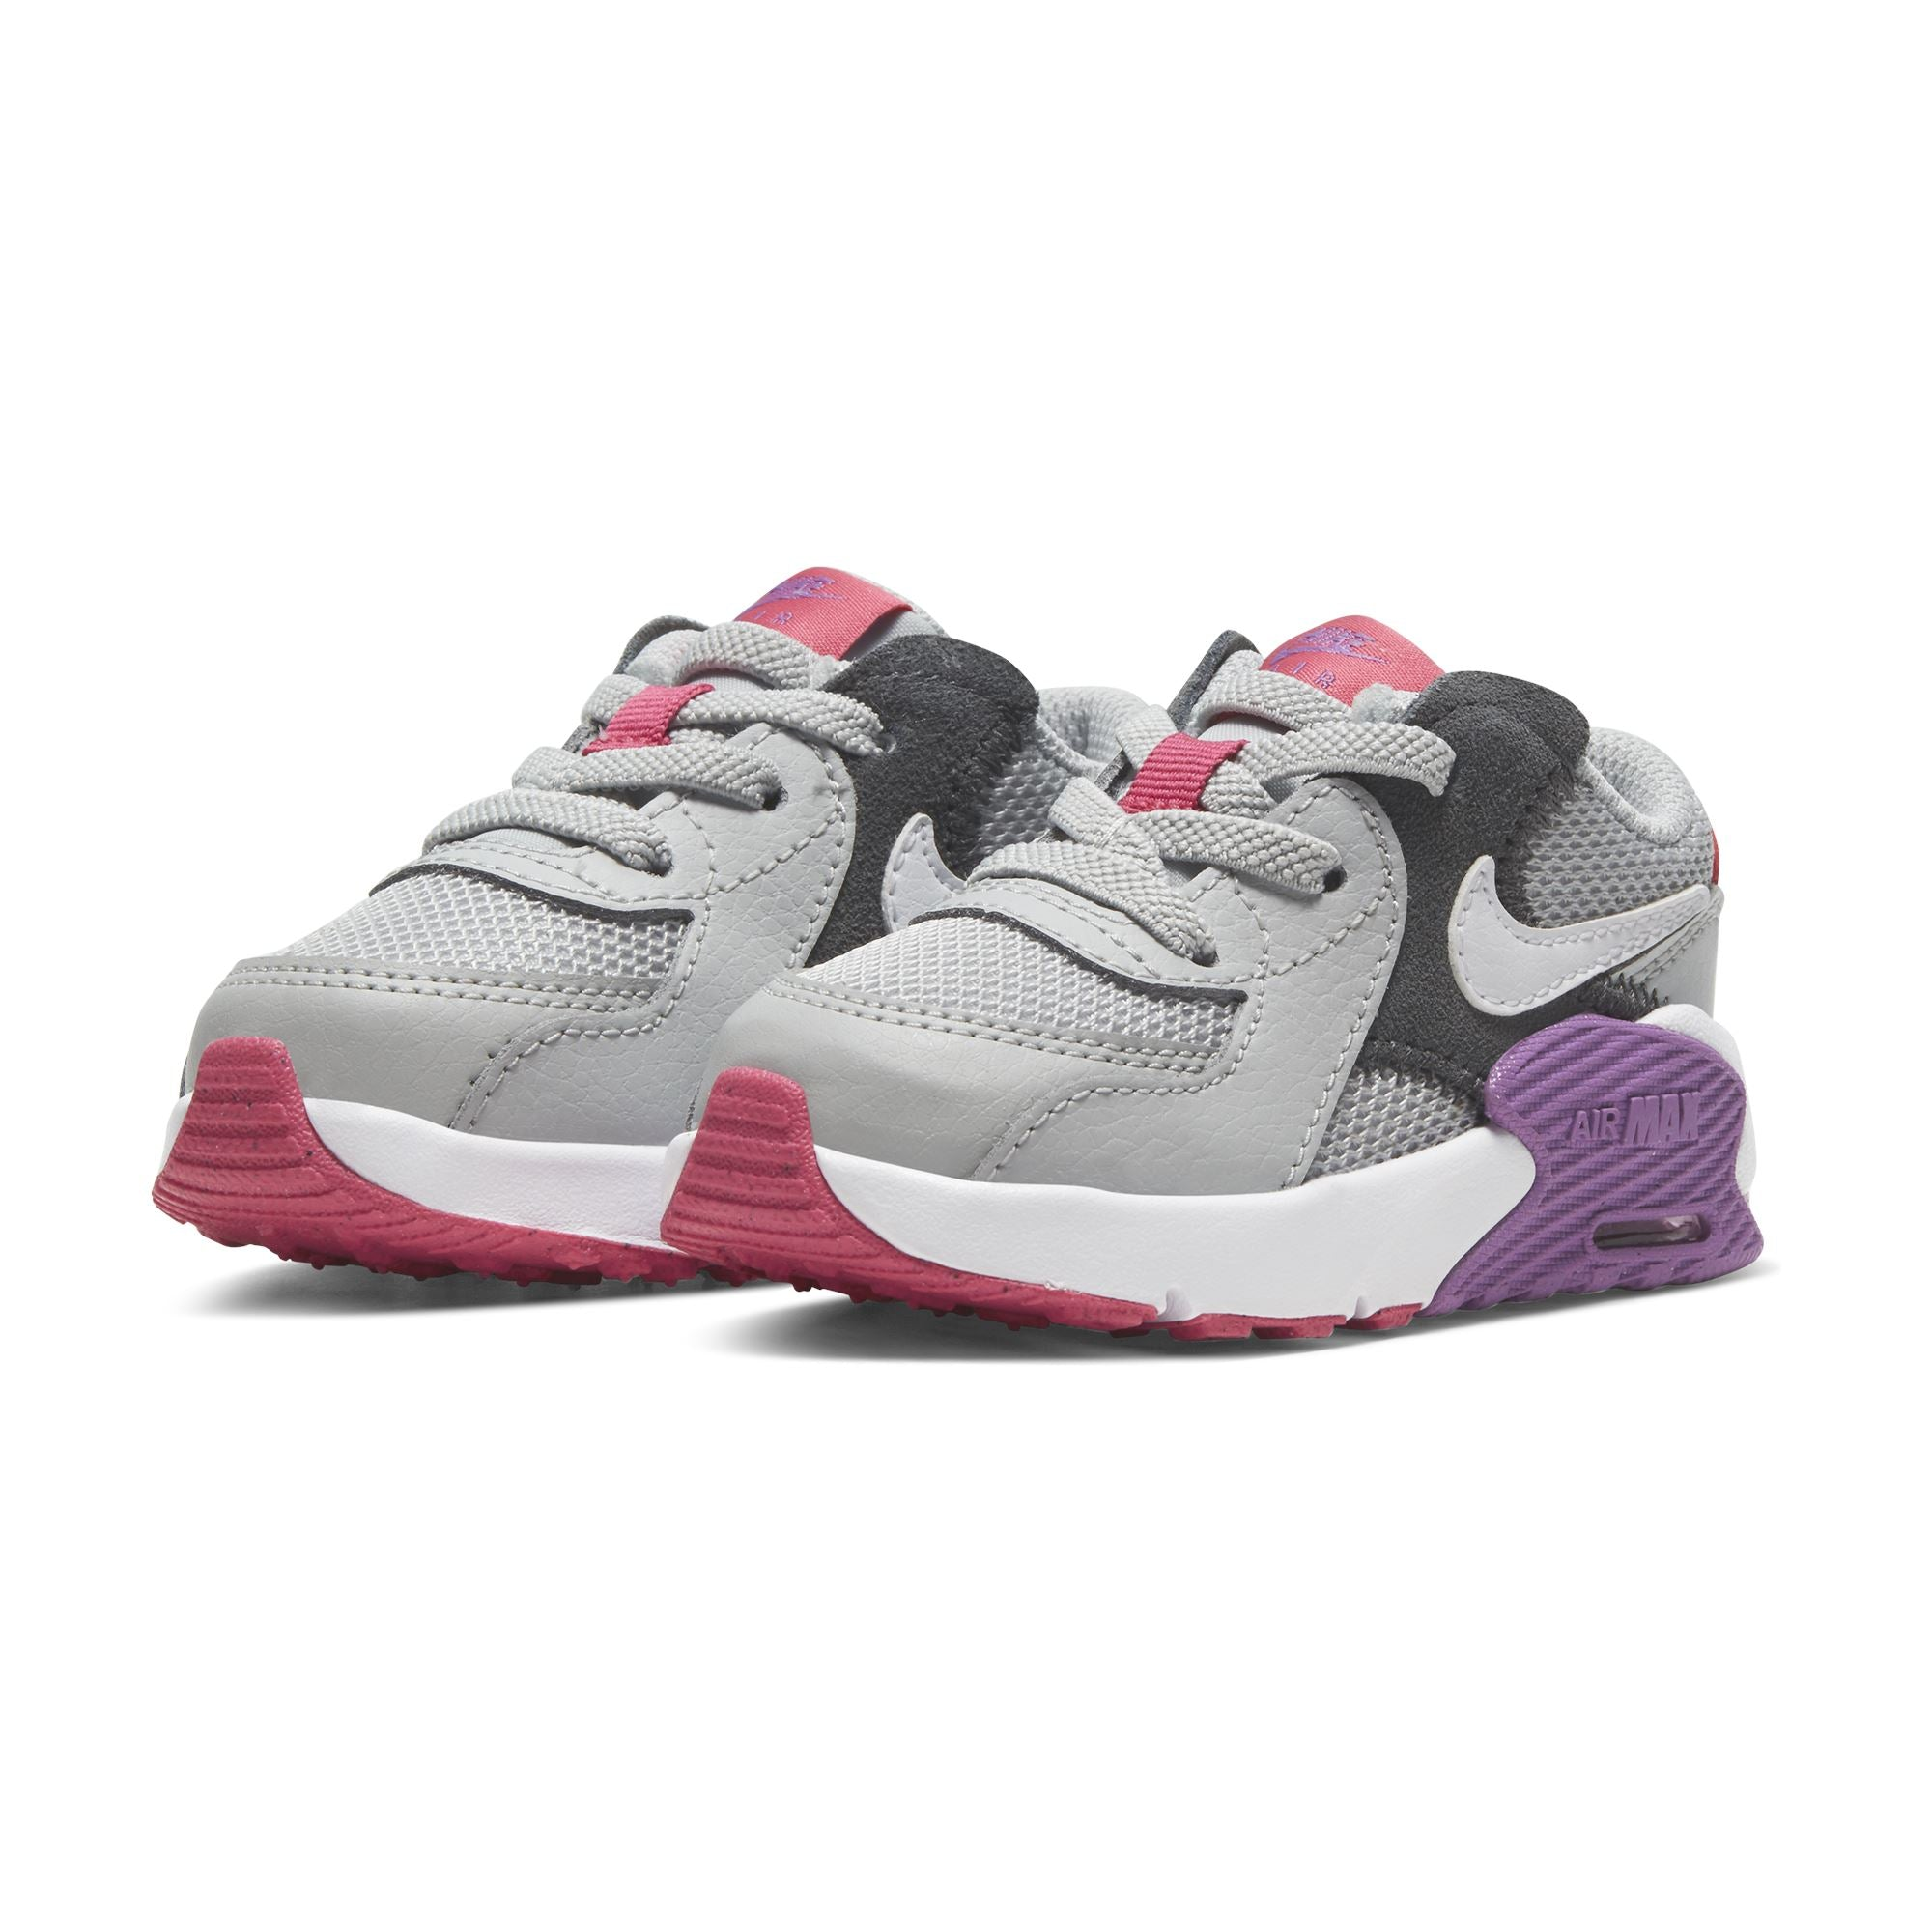 Nike Kids Air Max Excee - Grey Fog/White-Purple Nebula-Watermelon SP-Footwear-Kids Nike